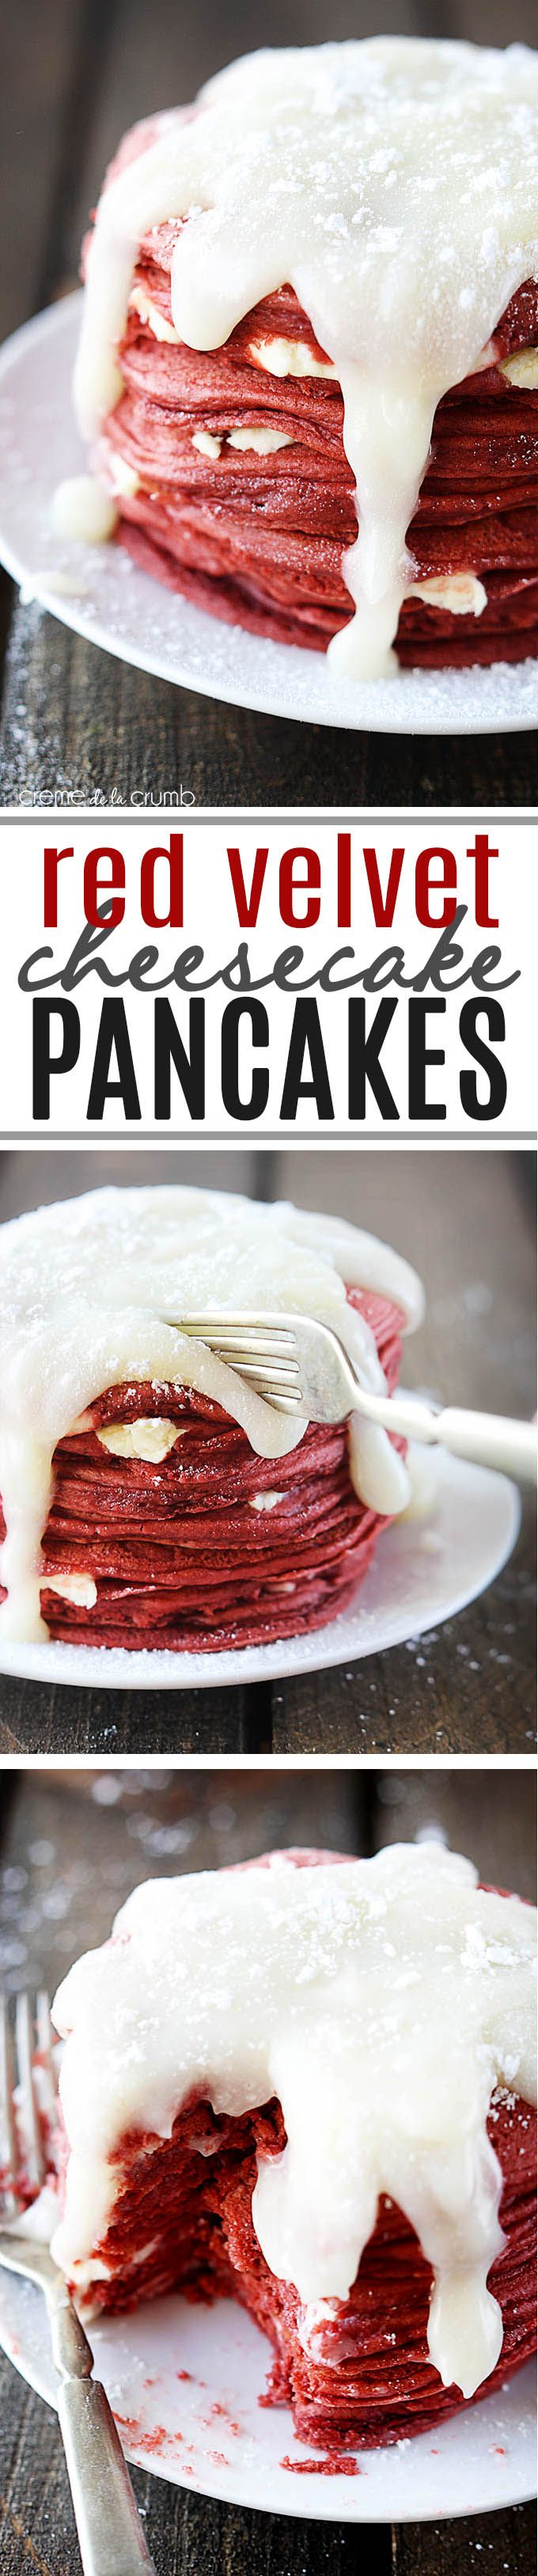 Red velvet cheesecake pancakes will start your Valentine's Day off right. Top red velvet pancakes with cream cheese icing to make this stellar breakfast work of edible art. This dish is bound to be the most colorful part of your family's breakfast spread.